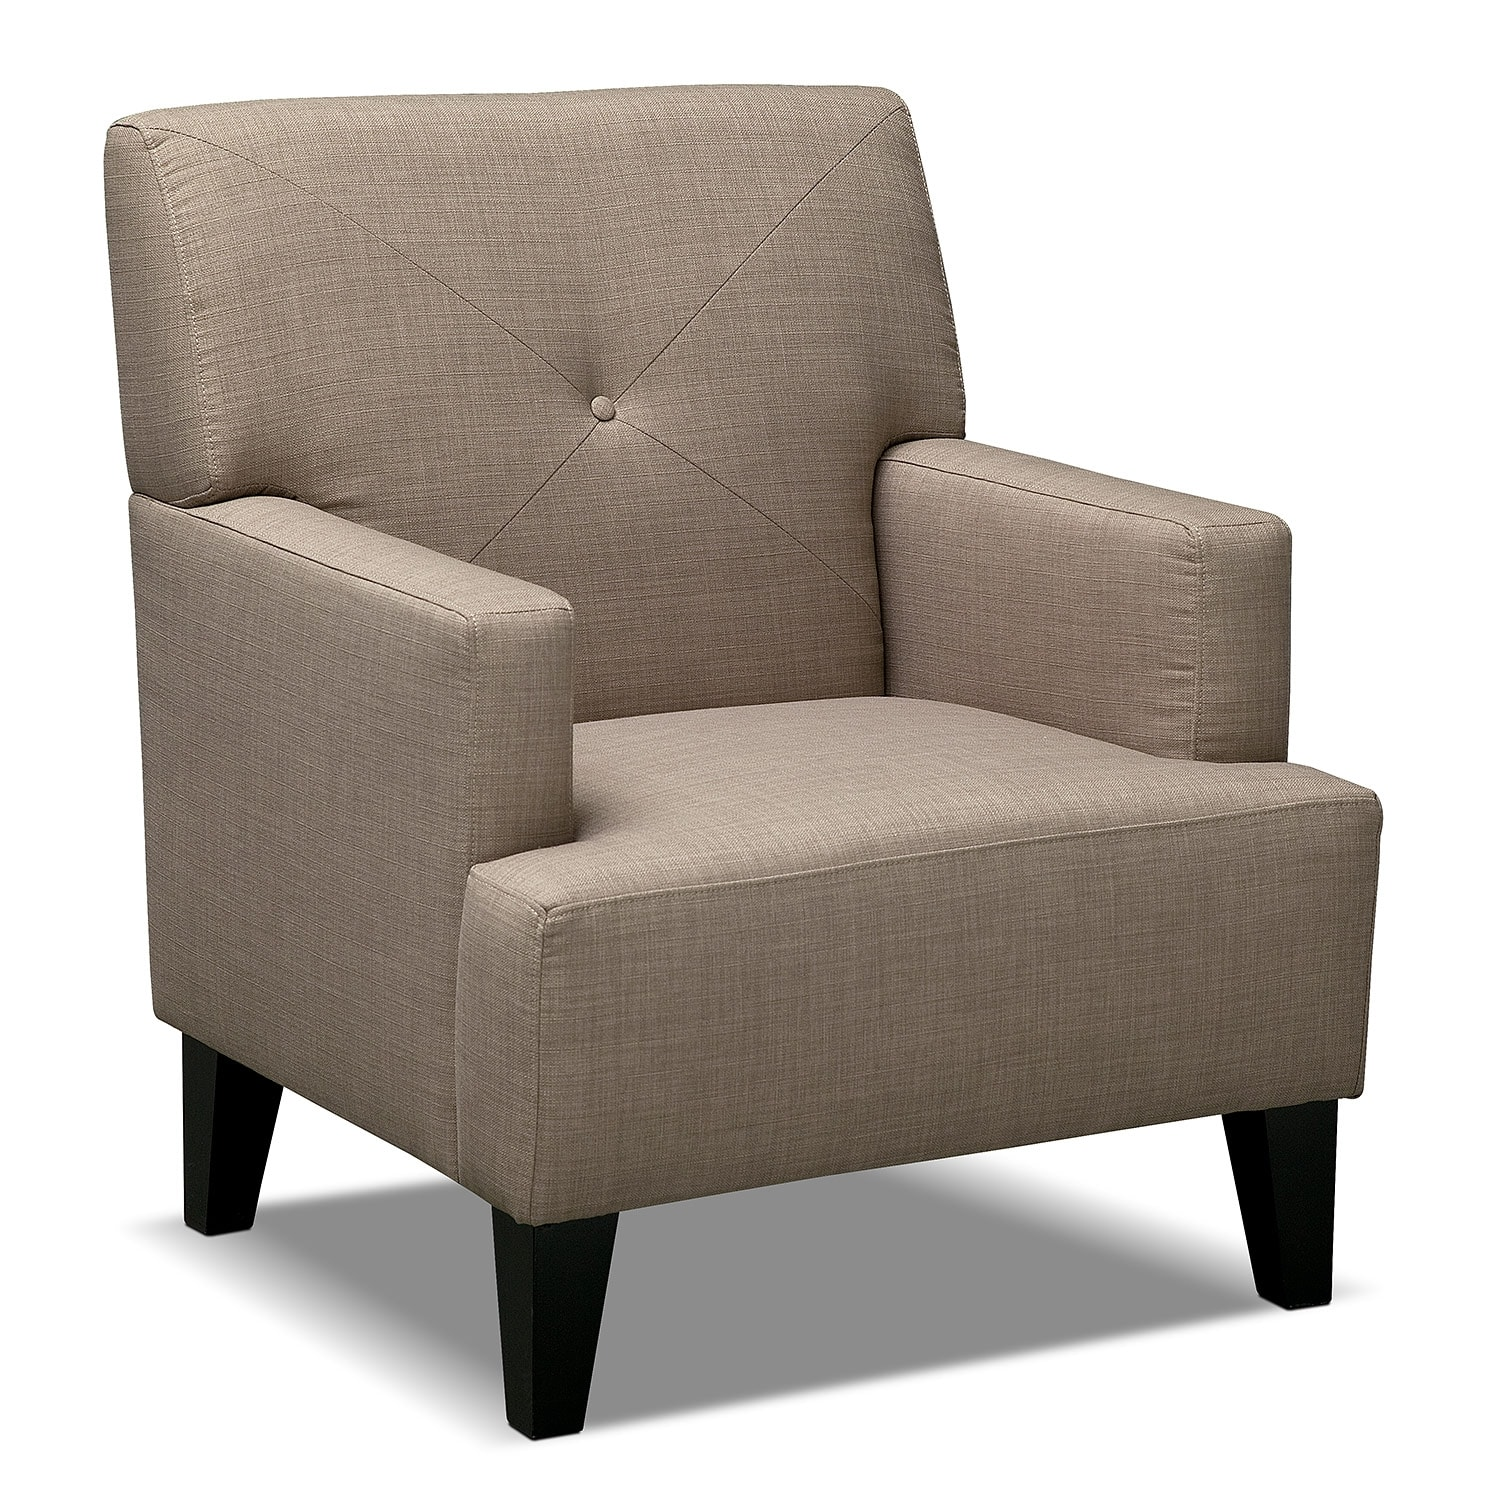 Accent chair avalon wheat value city furniture for Living room chairs